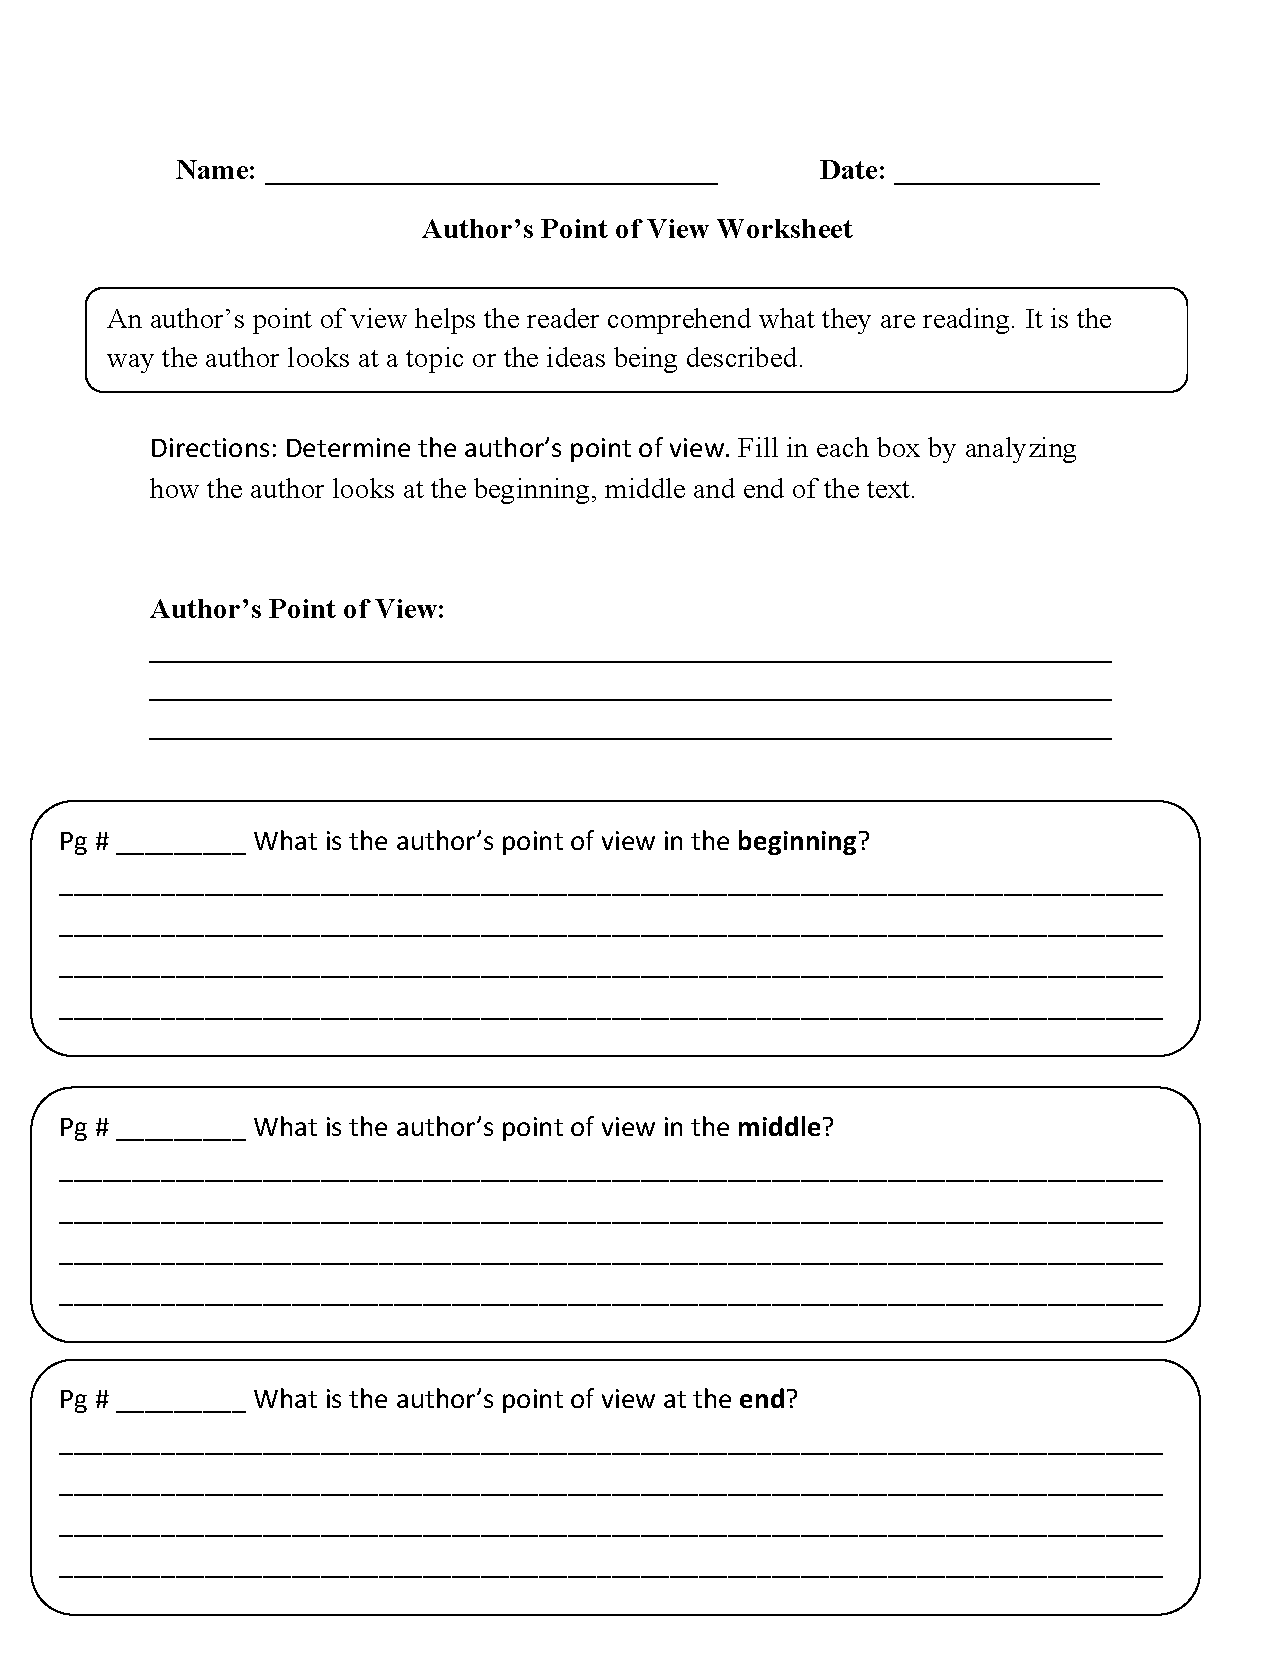 medium resolution of Point of View Worksheets   Author's Point of View Worksheets   Character  trait worksheets